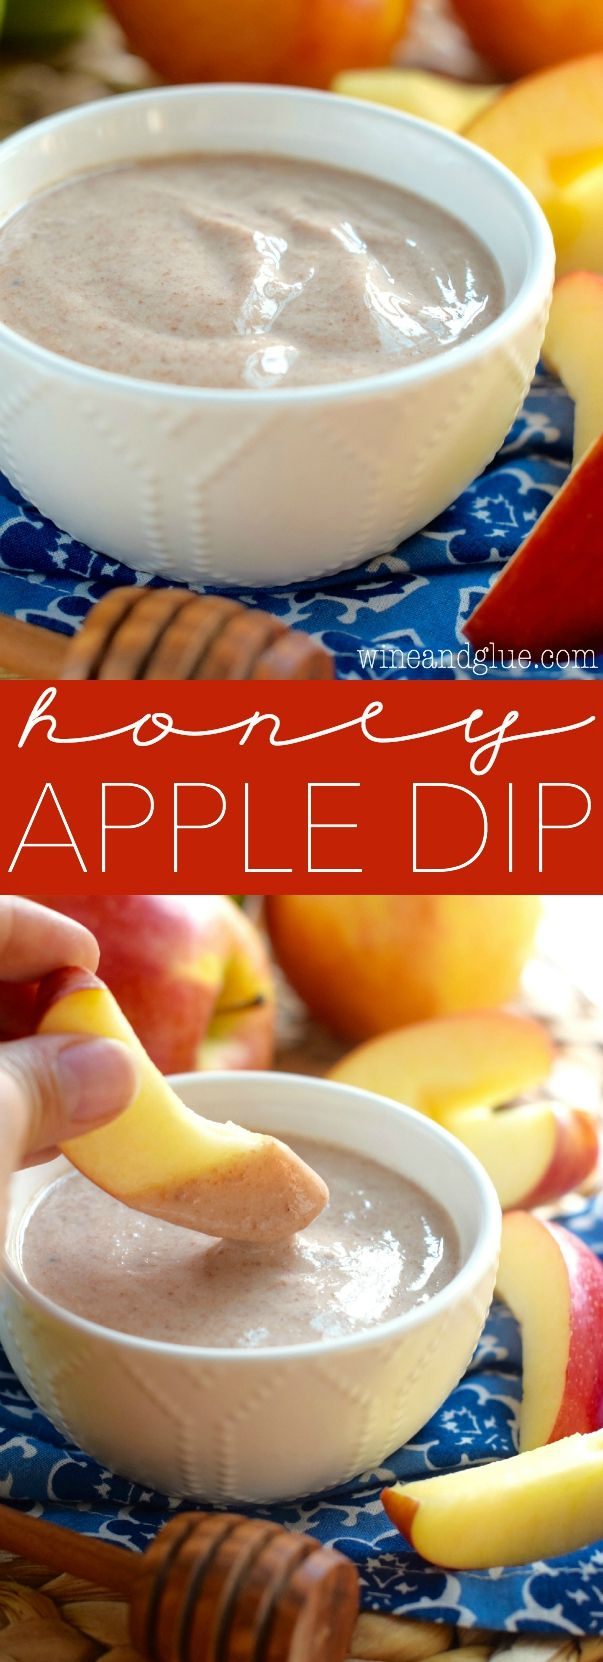 This Honey Apple Dip is so easy to whip up and makes a perfect snack for the kiddos that you can feel great about giving to them!